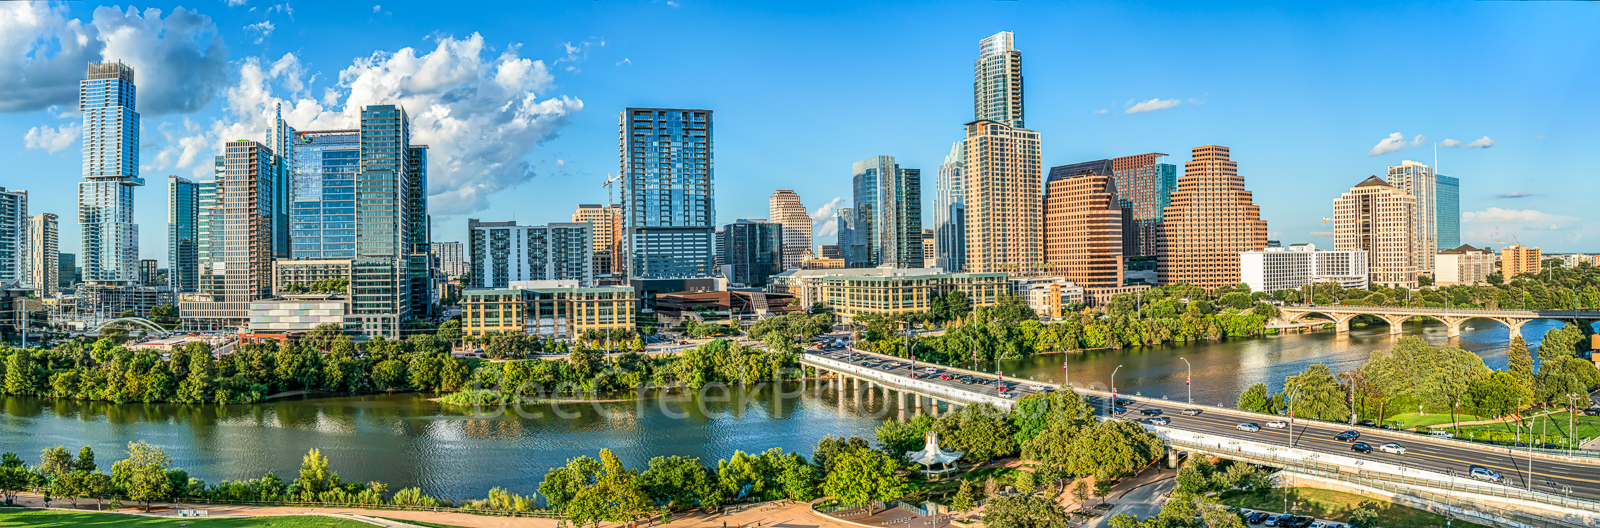 Aerial, Austin Skyline, Austin, skyline, downtown austin,  lady bird lake, hike and bike trail, panorama, tallest building, Independent, pics of texas, image of texas, austin tx, skyline of austin tx,, photo